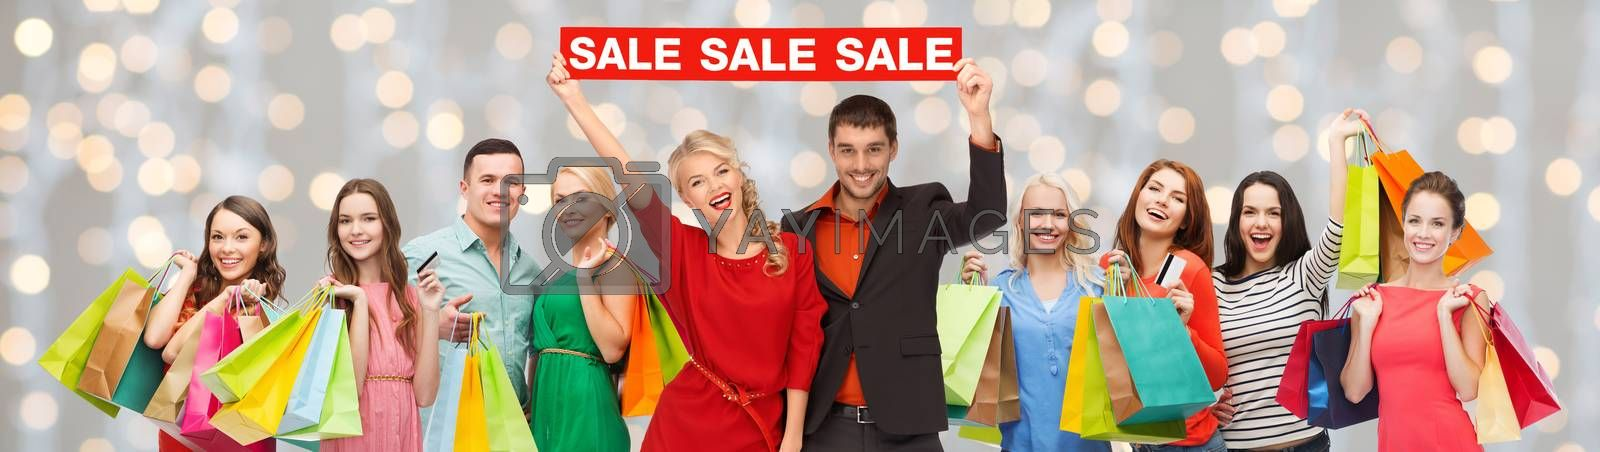 consumerism, people and discount concept - group of happy people with sale sign and shopping bags over holidays lights background